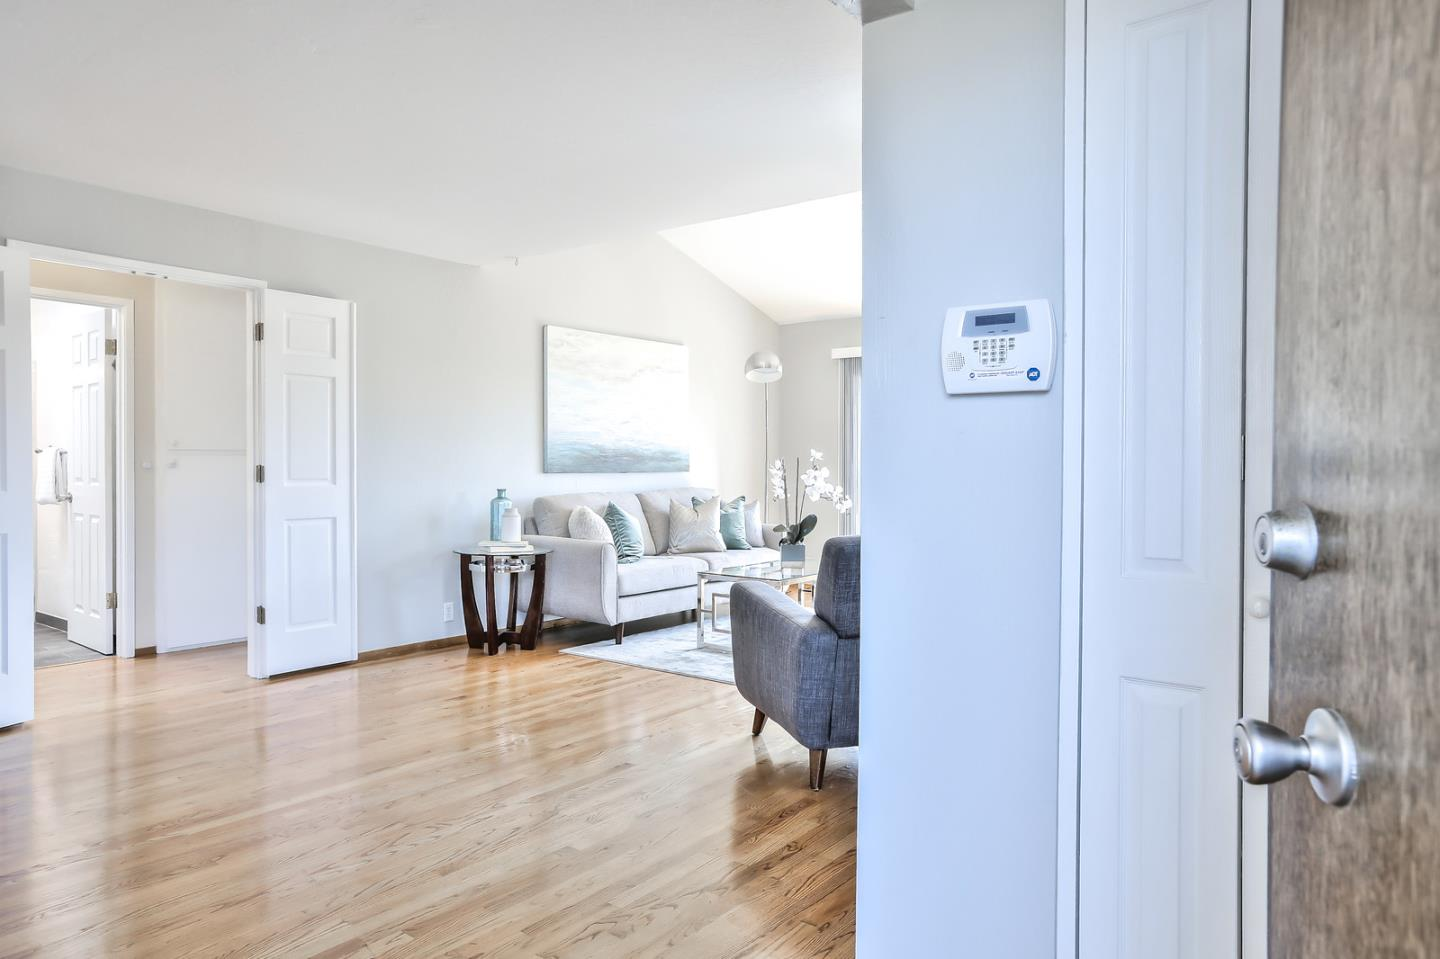 Image for 631 Brosnan Court, <br>South San Francisco 94080